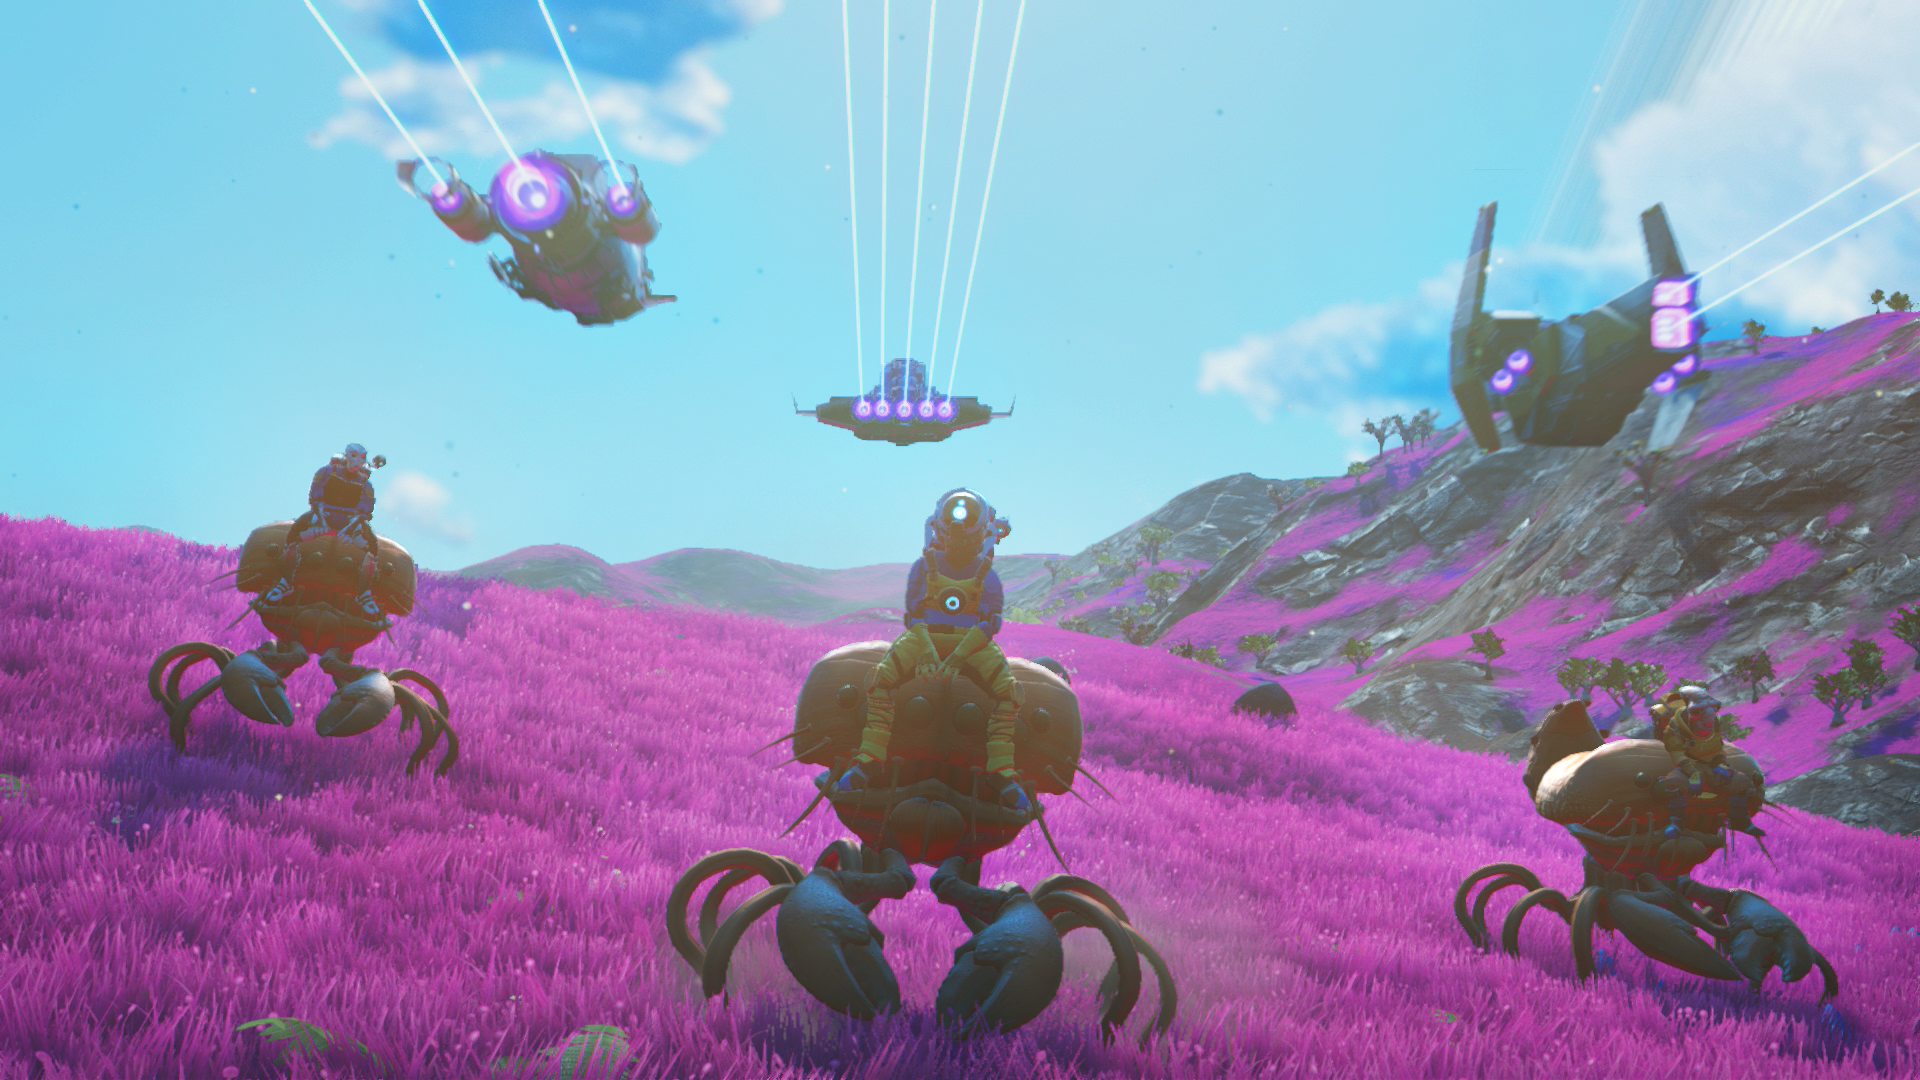 No Man's Sky Creator On New Multiplayer Features And Taming Animals